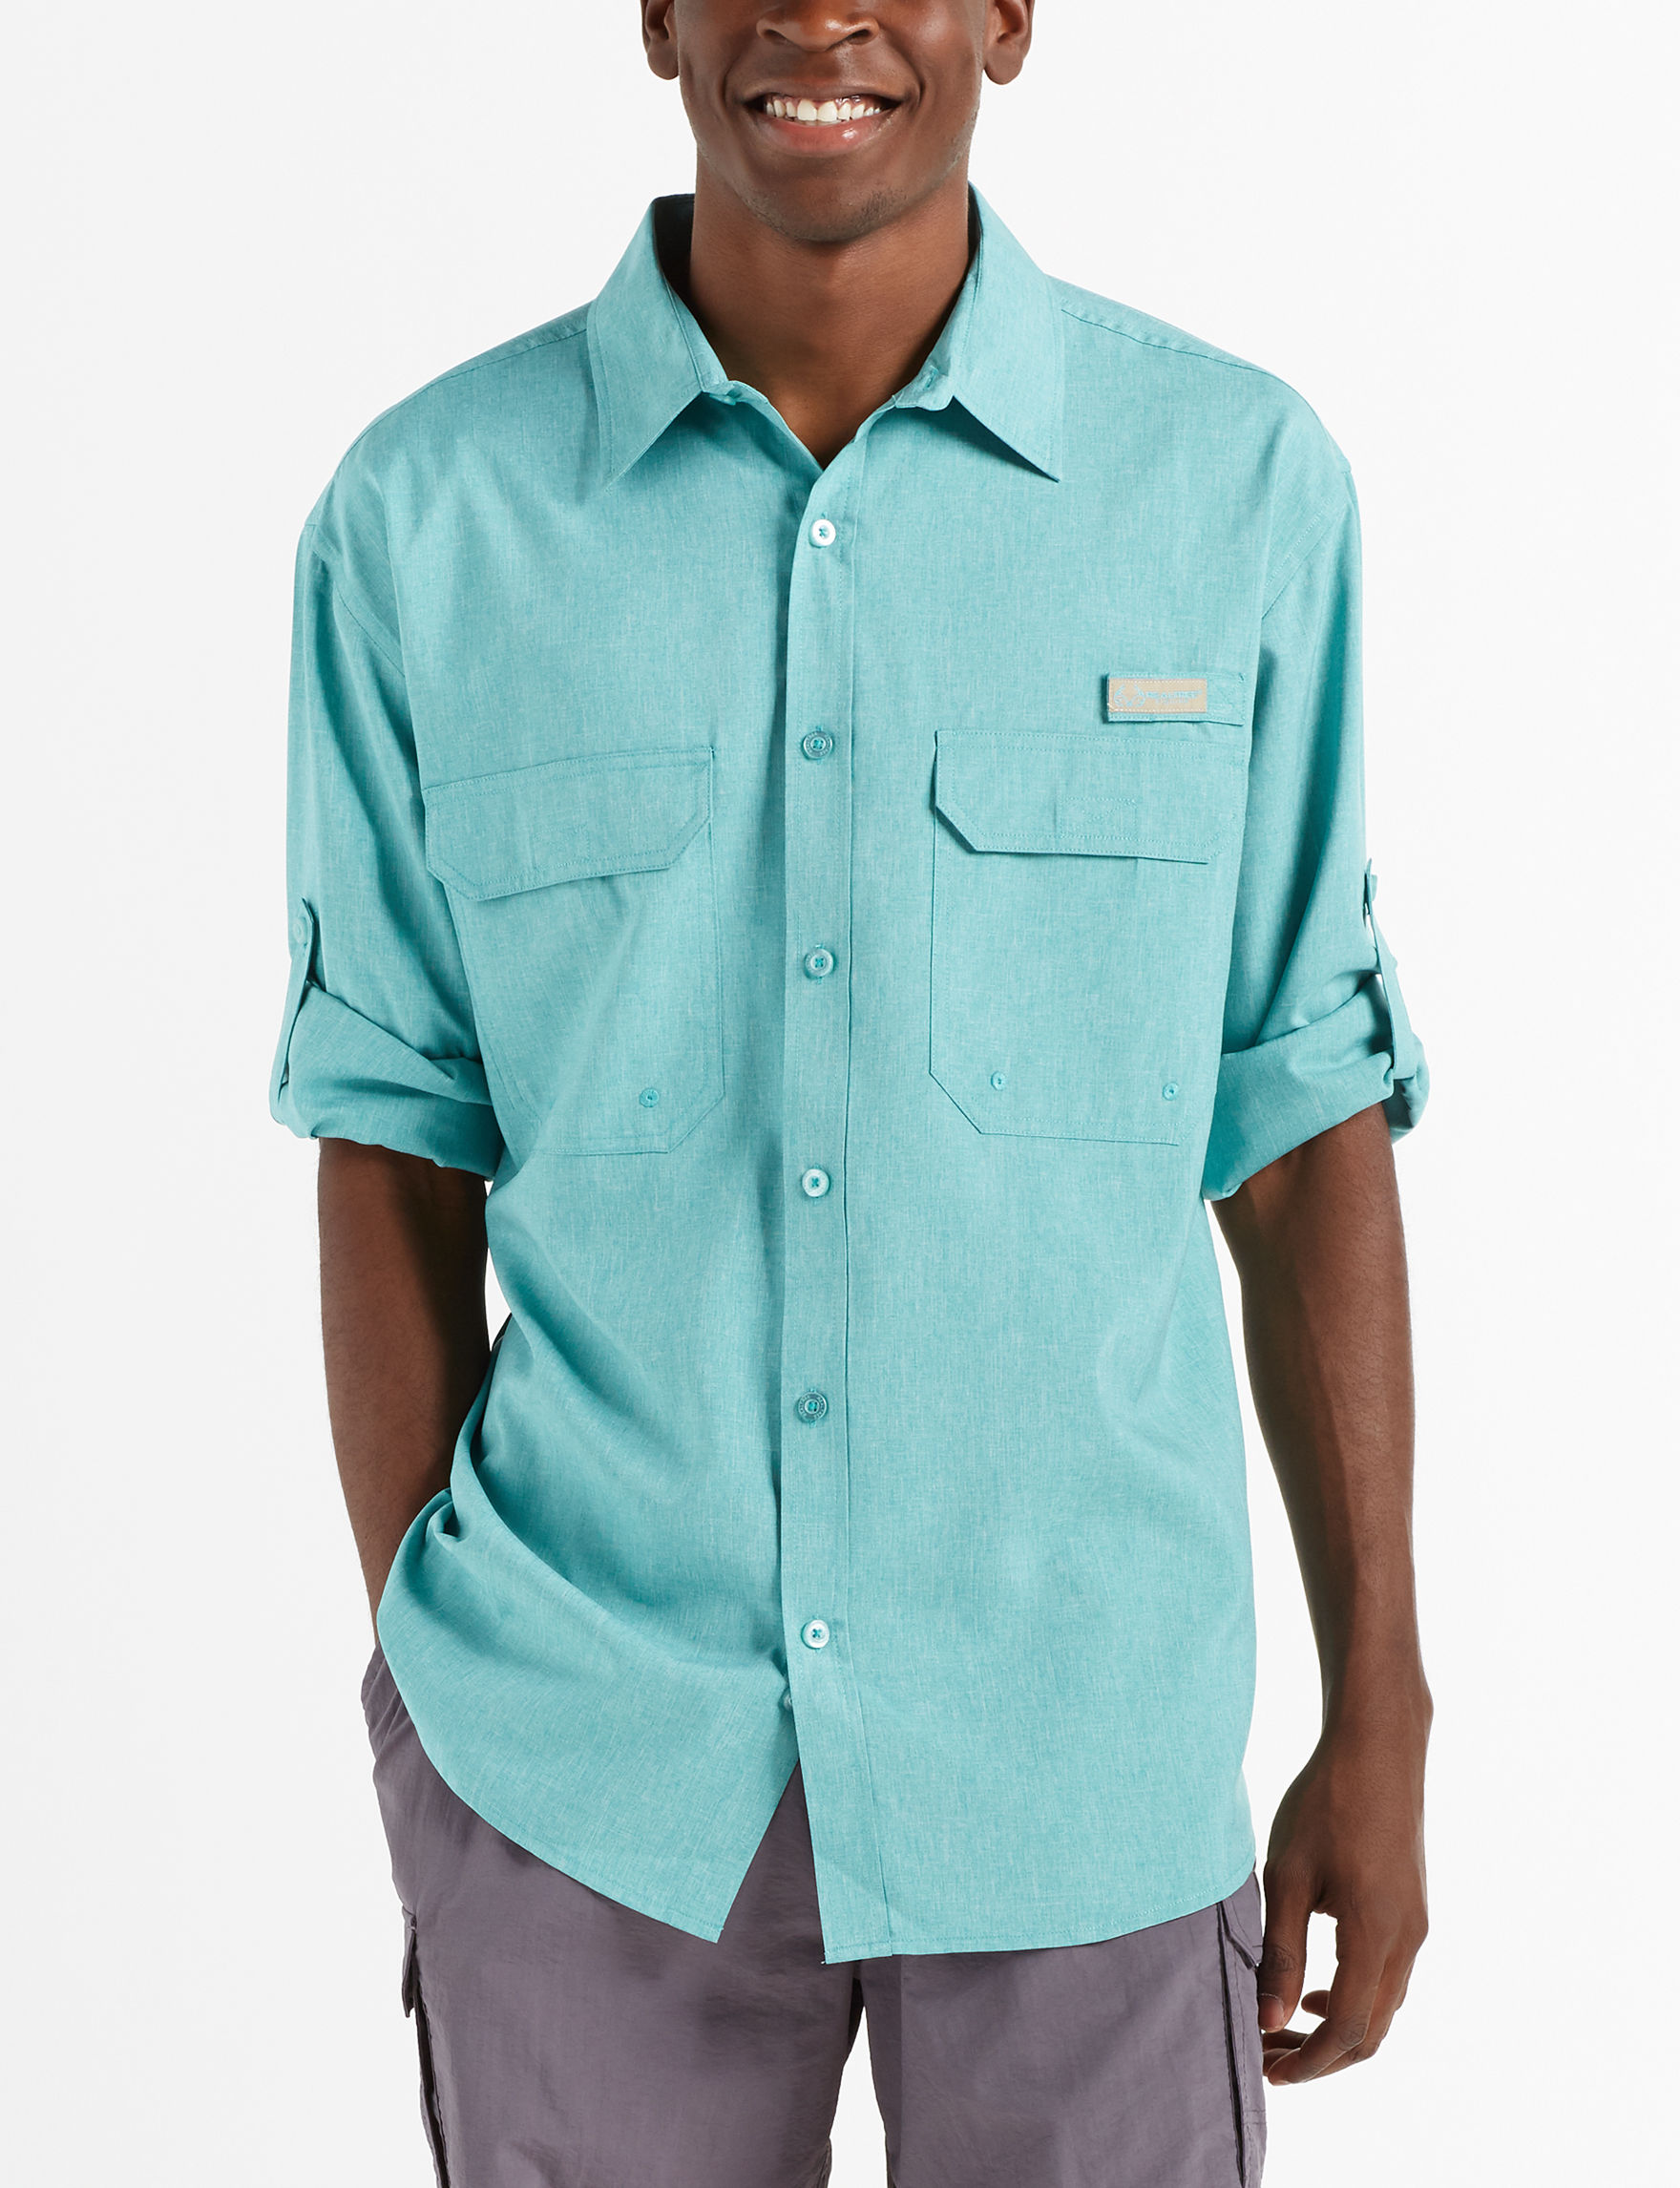 Realtree Blue Heather Casual Button Down Shirts